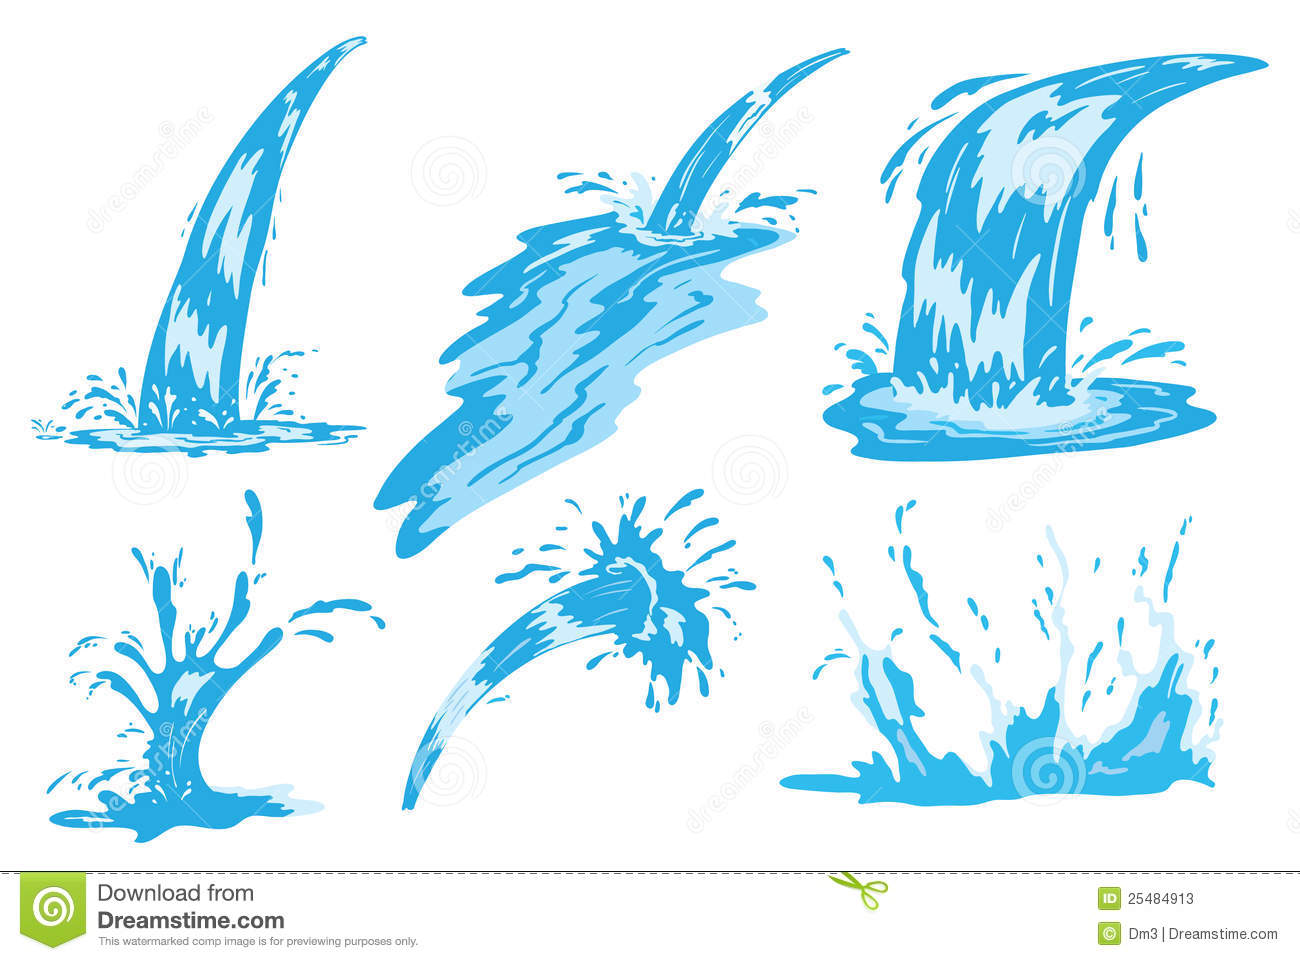 Water jet clipart.